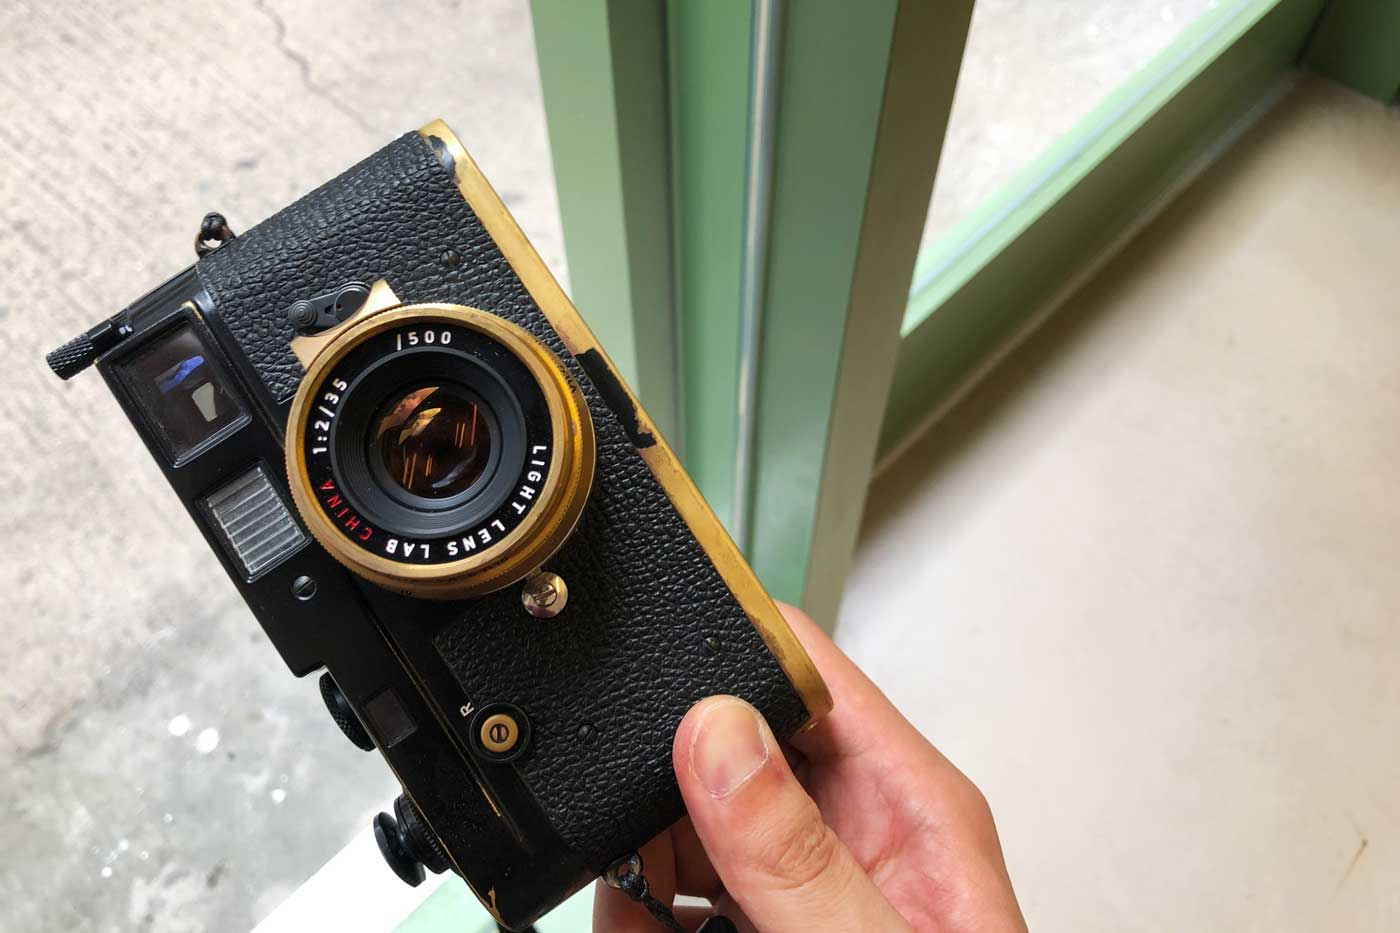 light-lens-lab-35mm-f2-35:2-LLL-Leica-Summicron-2.0-brass-black-paint-m2-brassed-hk-review-lens-lenses-original-8-elements-周八枚coffee-versions-brassing